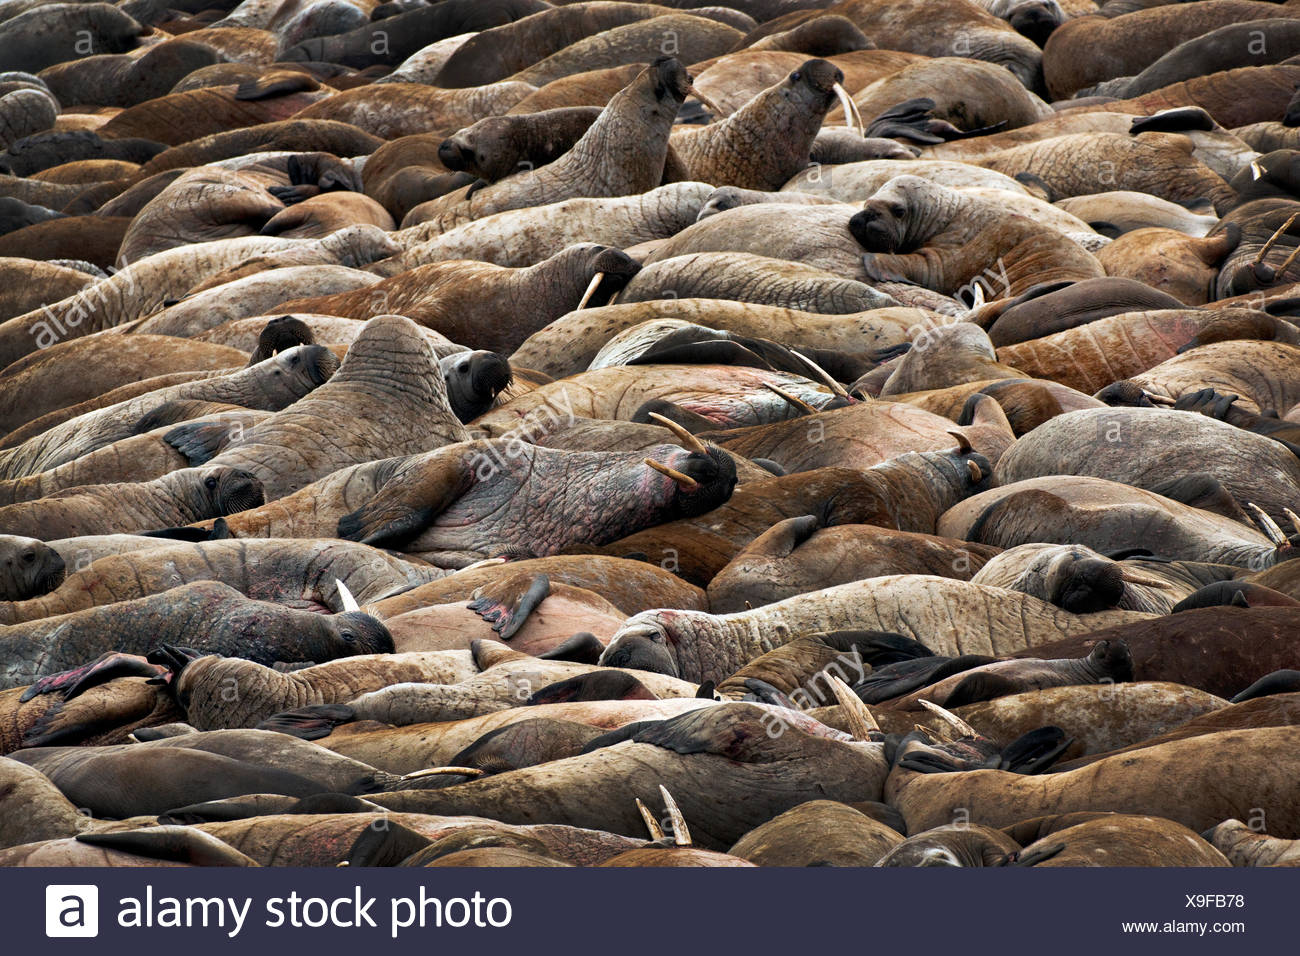 Walrus, Odobenus rosmarus, haul out, Hall Beach, Nunavut, Canada - Stock Image